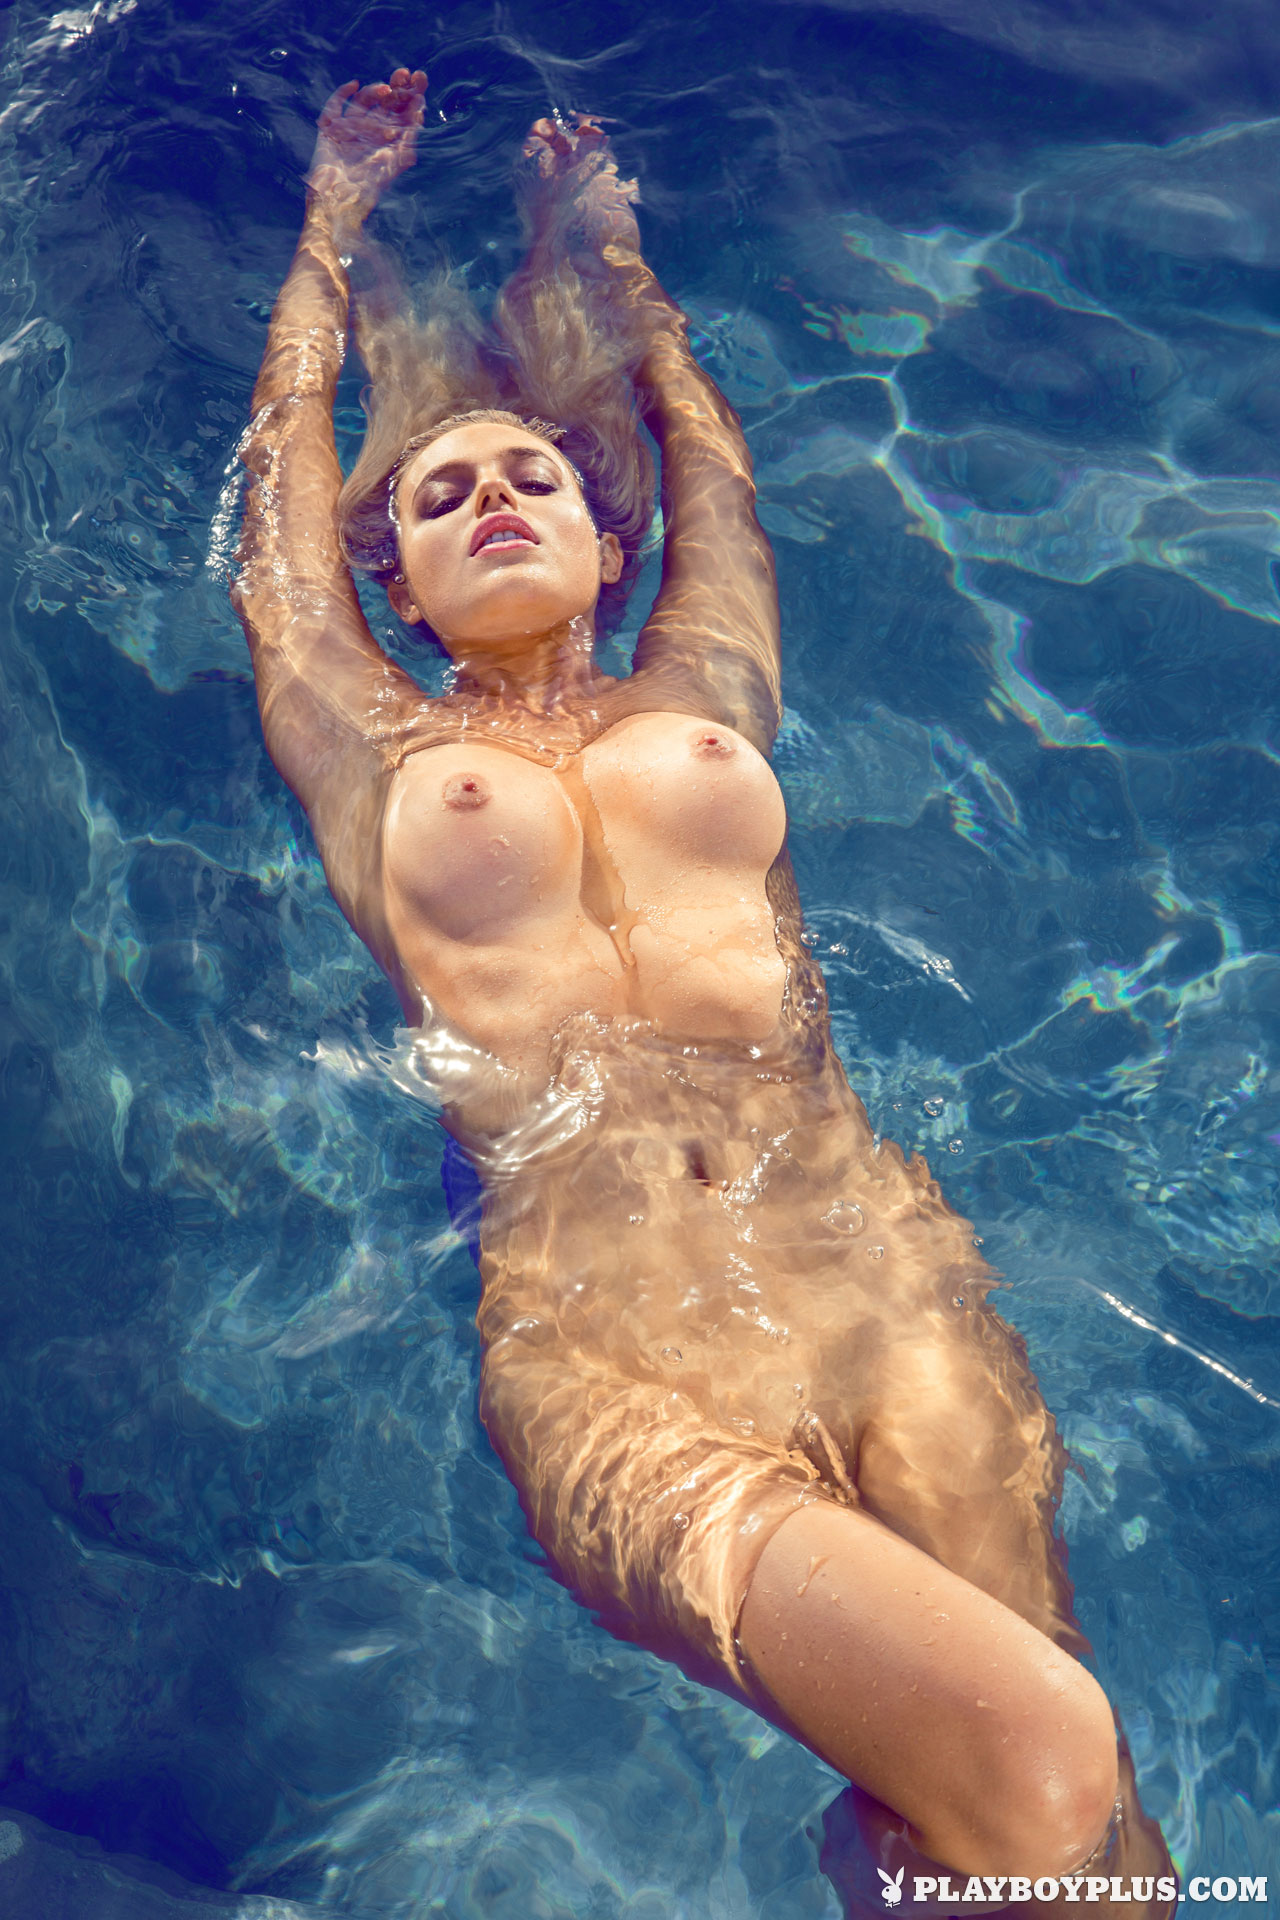 girls-nude-in-pool-wet-photo-mix-vol6-20